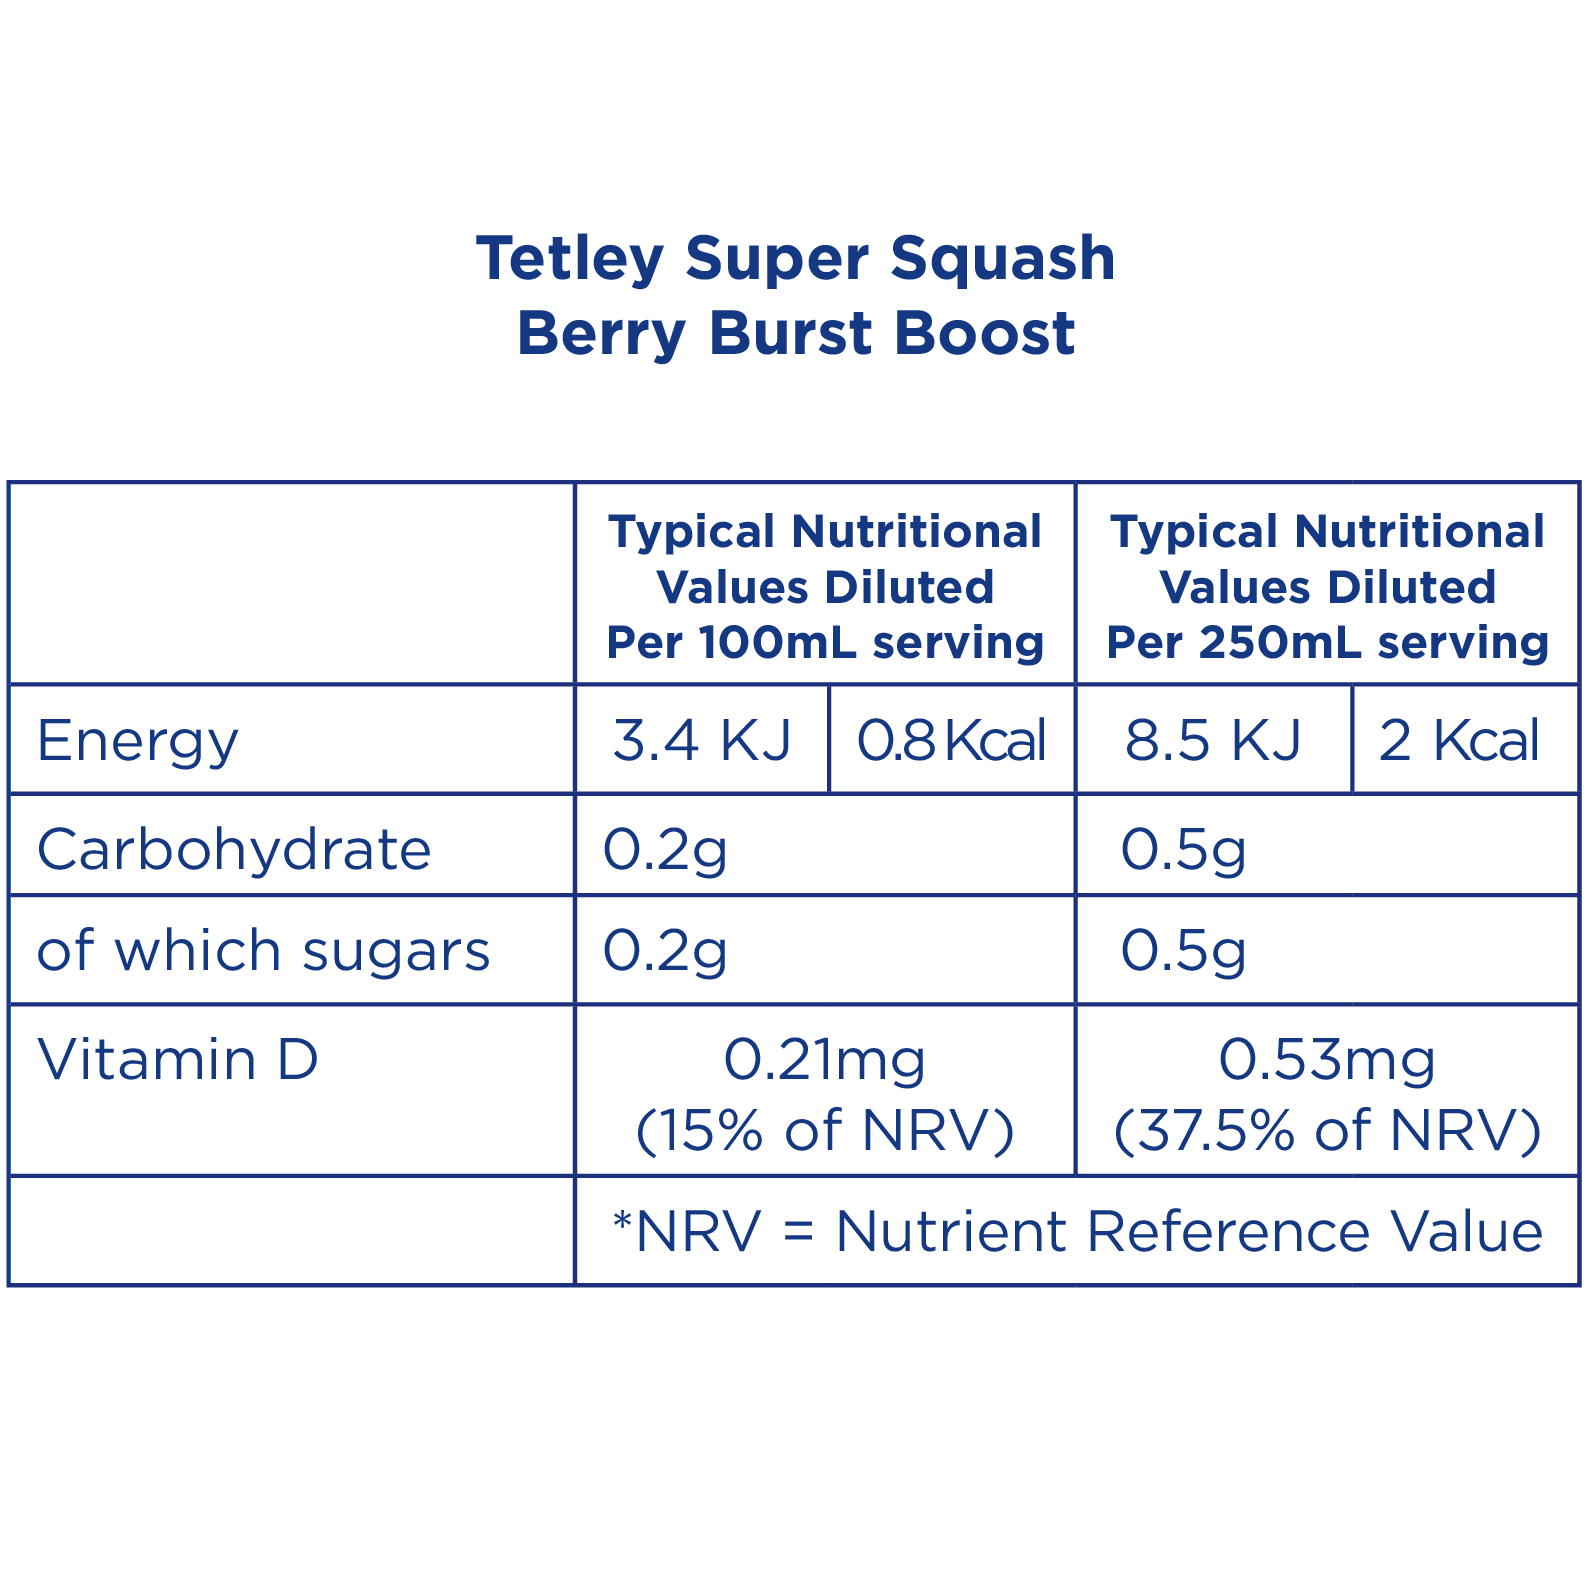 Tetley Super Squash Boost Berry Burst